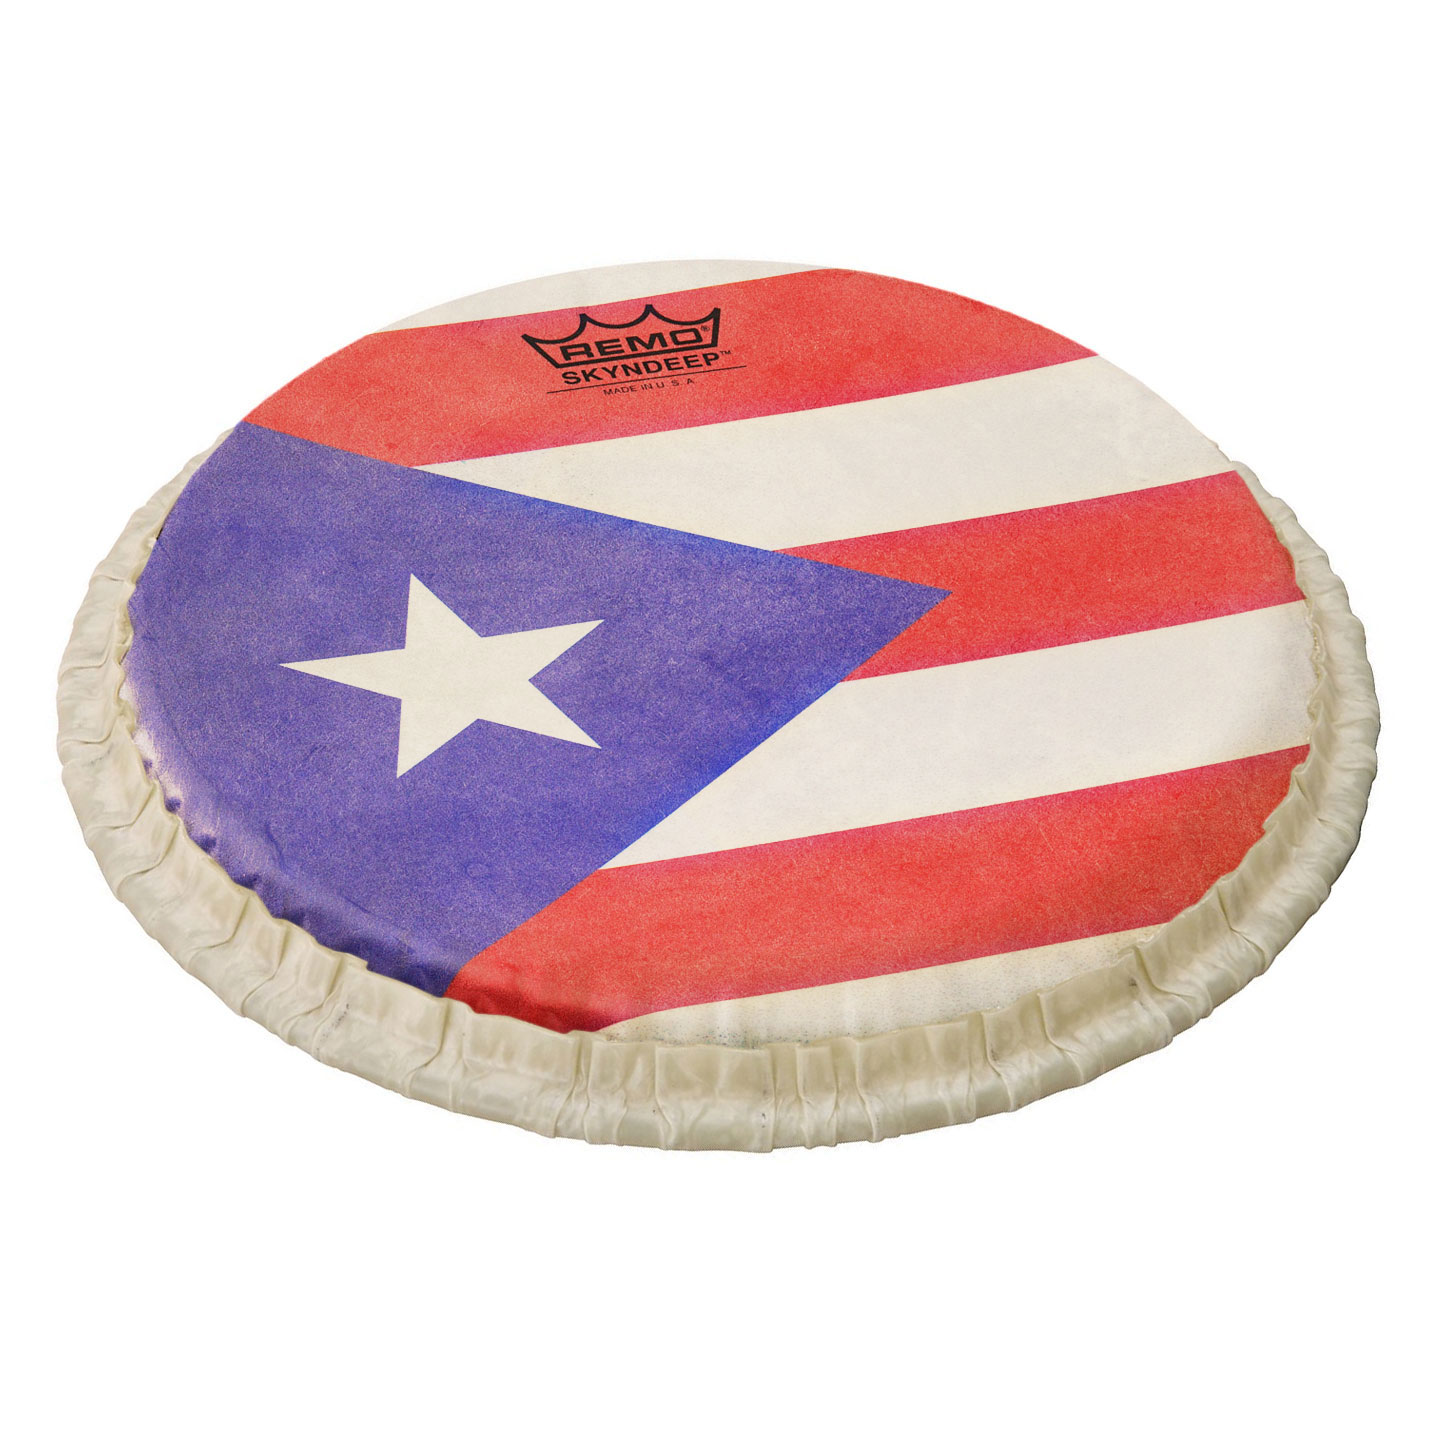 "Remo 11.06"" Tucked Skyndeep Conga Drum Head with Puerto Rican Flag Graphic"